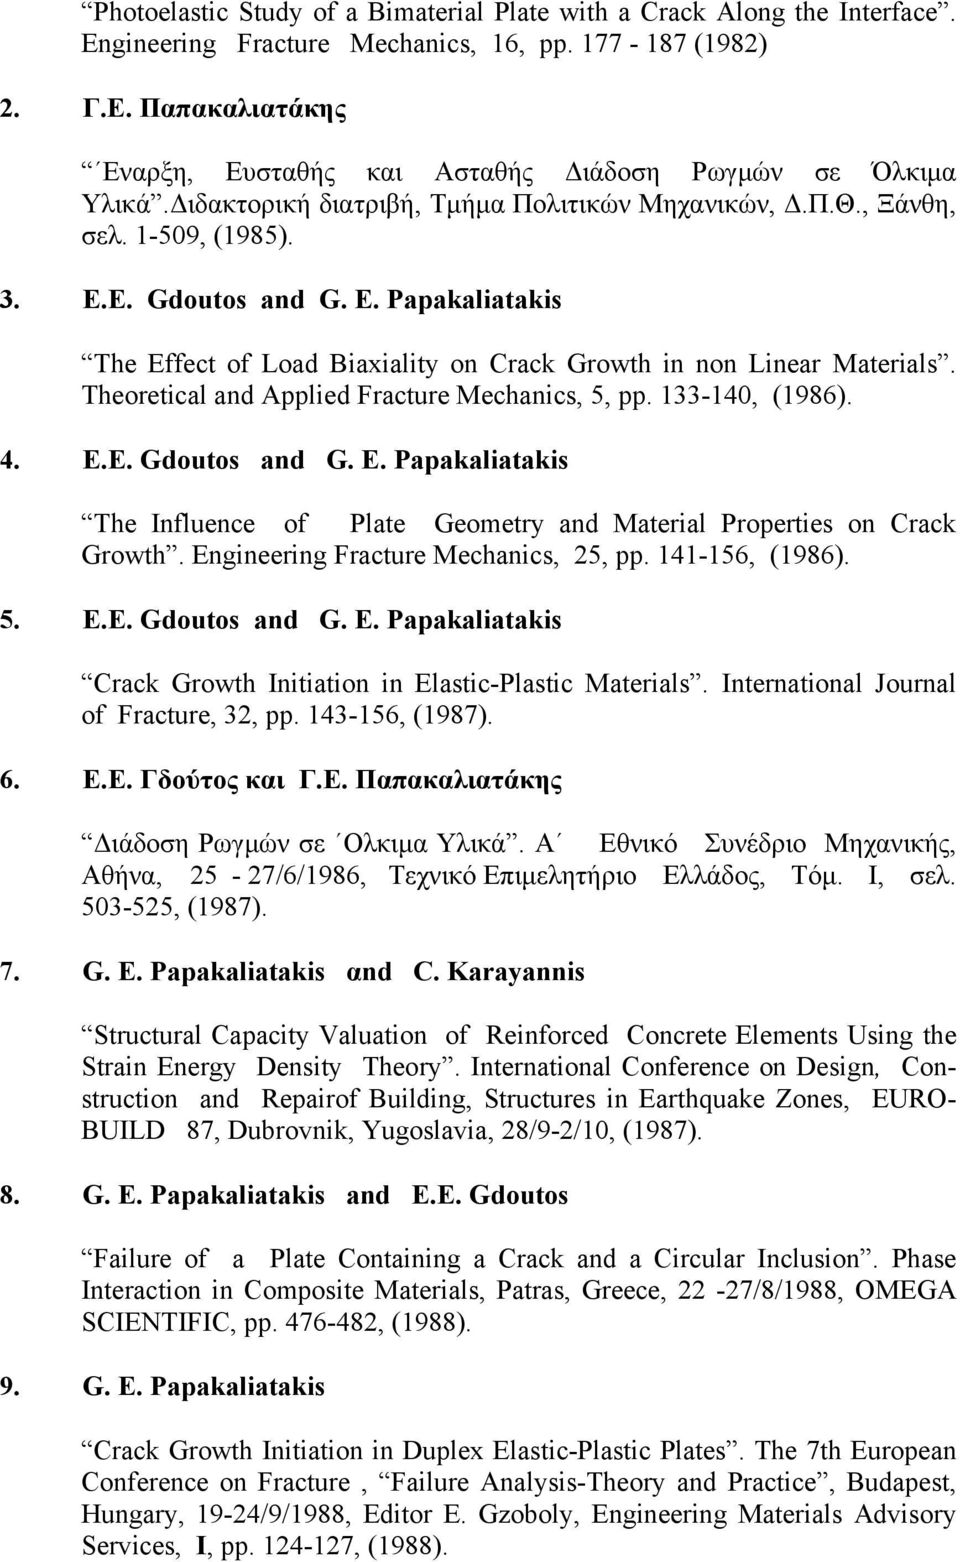 Ε. Gdoutos and G. E. Papakaliatakis Τhe Effect of Load Biaxiality on Crack Growth in non Linear Materials. Theoretical and Applied Fracture Mechanics, 5, pp. 133-140, (1986). 4. E.E. Gdoutos and G. E. Papakaliatakis Τhe Influence of Plate Geometry and Material Properties on Crack Growth.